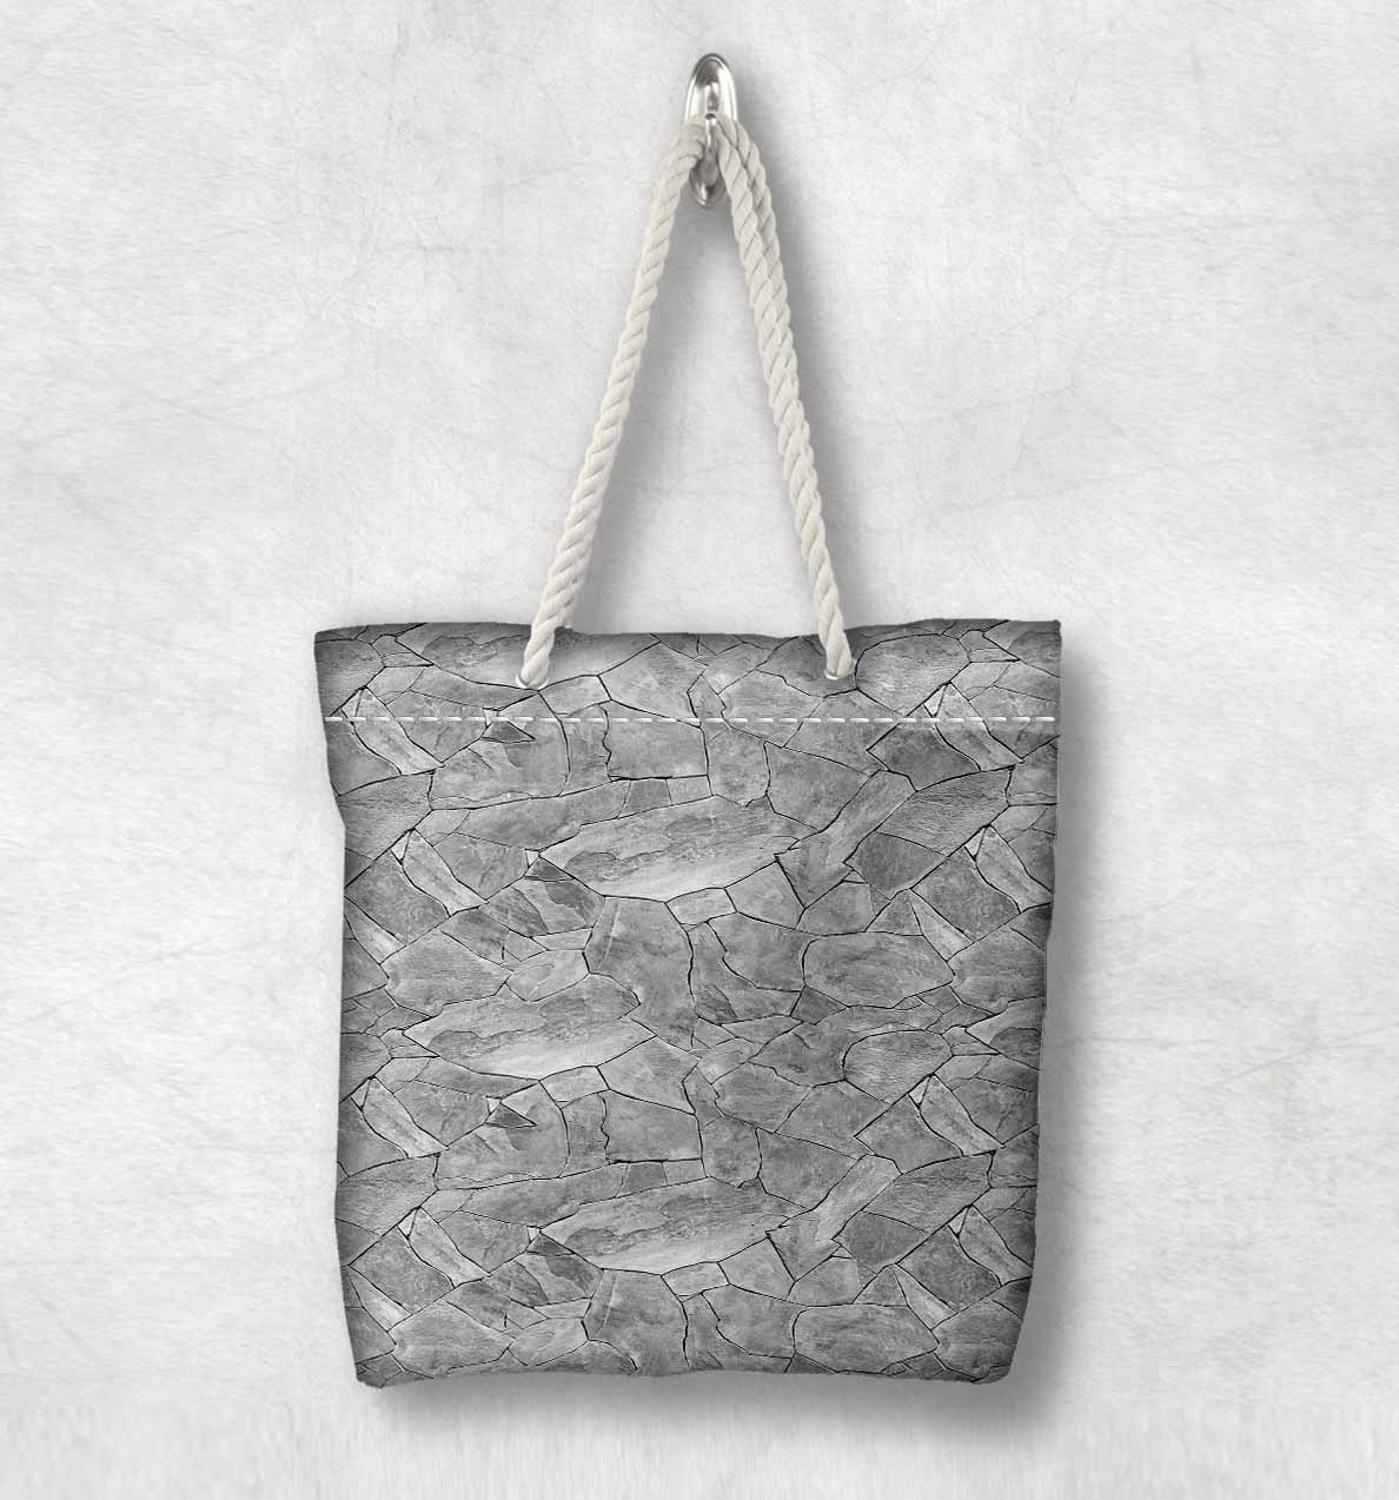 Else Gray White Broken Wall Stones New Fashion White Rope Handle Canvas Bag Cotton Canvas Zippered Tote Bag Shoulder Bag